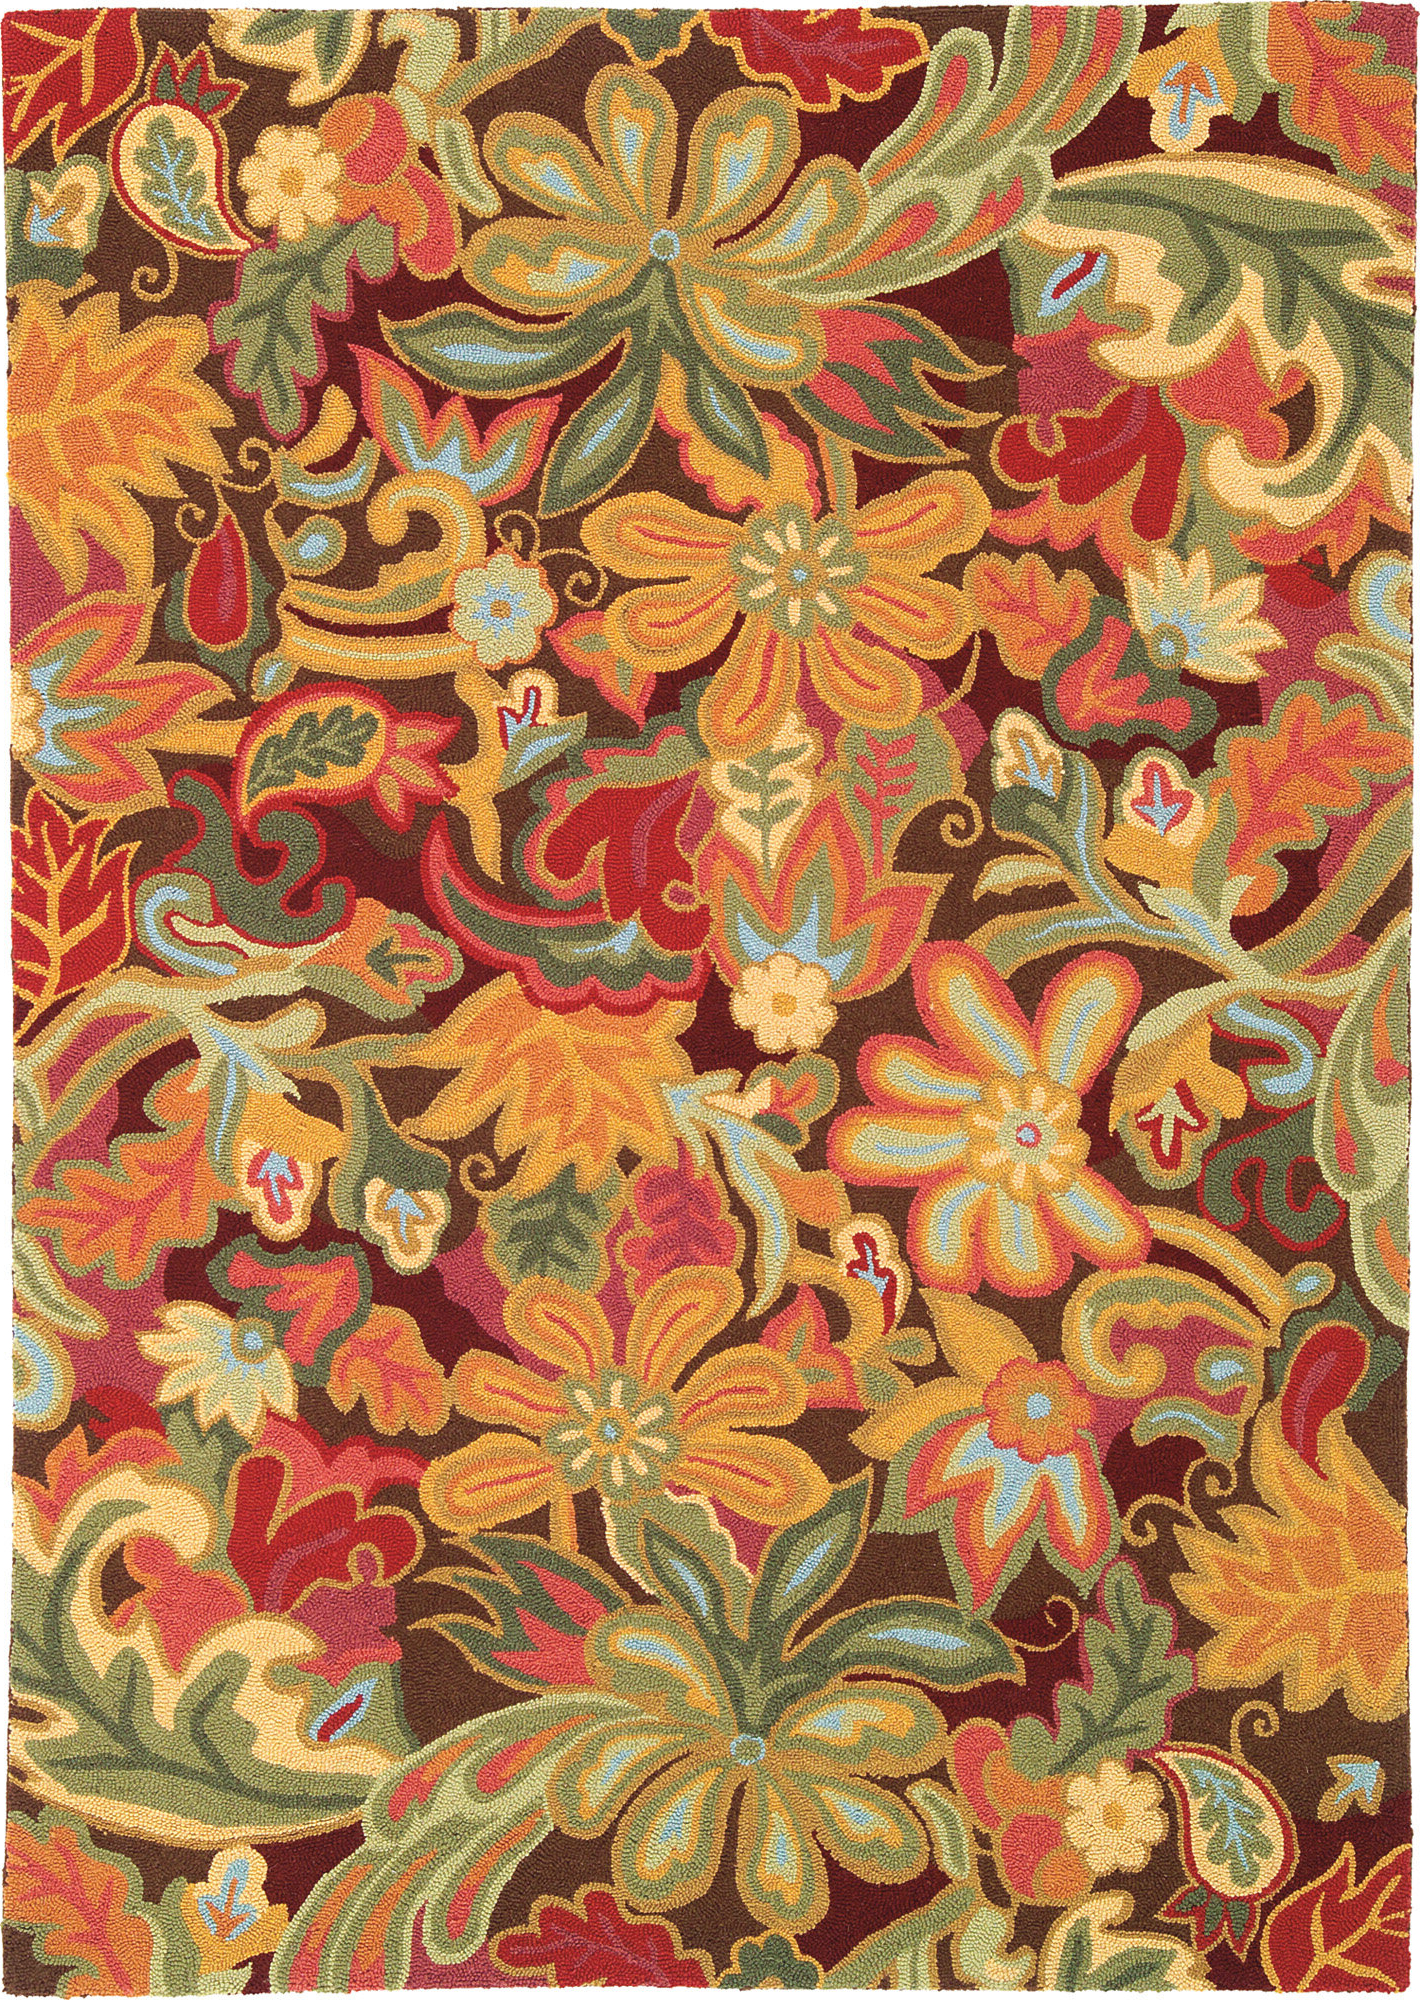 Most Up To Date Blended Fabric Hidden Garden Chinoiserie Wall Hangings With Rod Regarding Wool Tapestry (View 13 of 20)